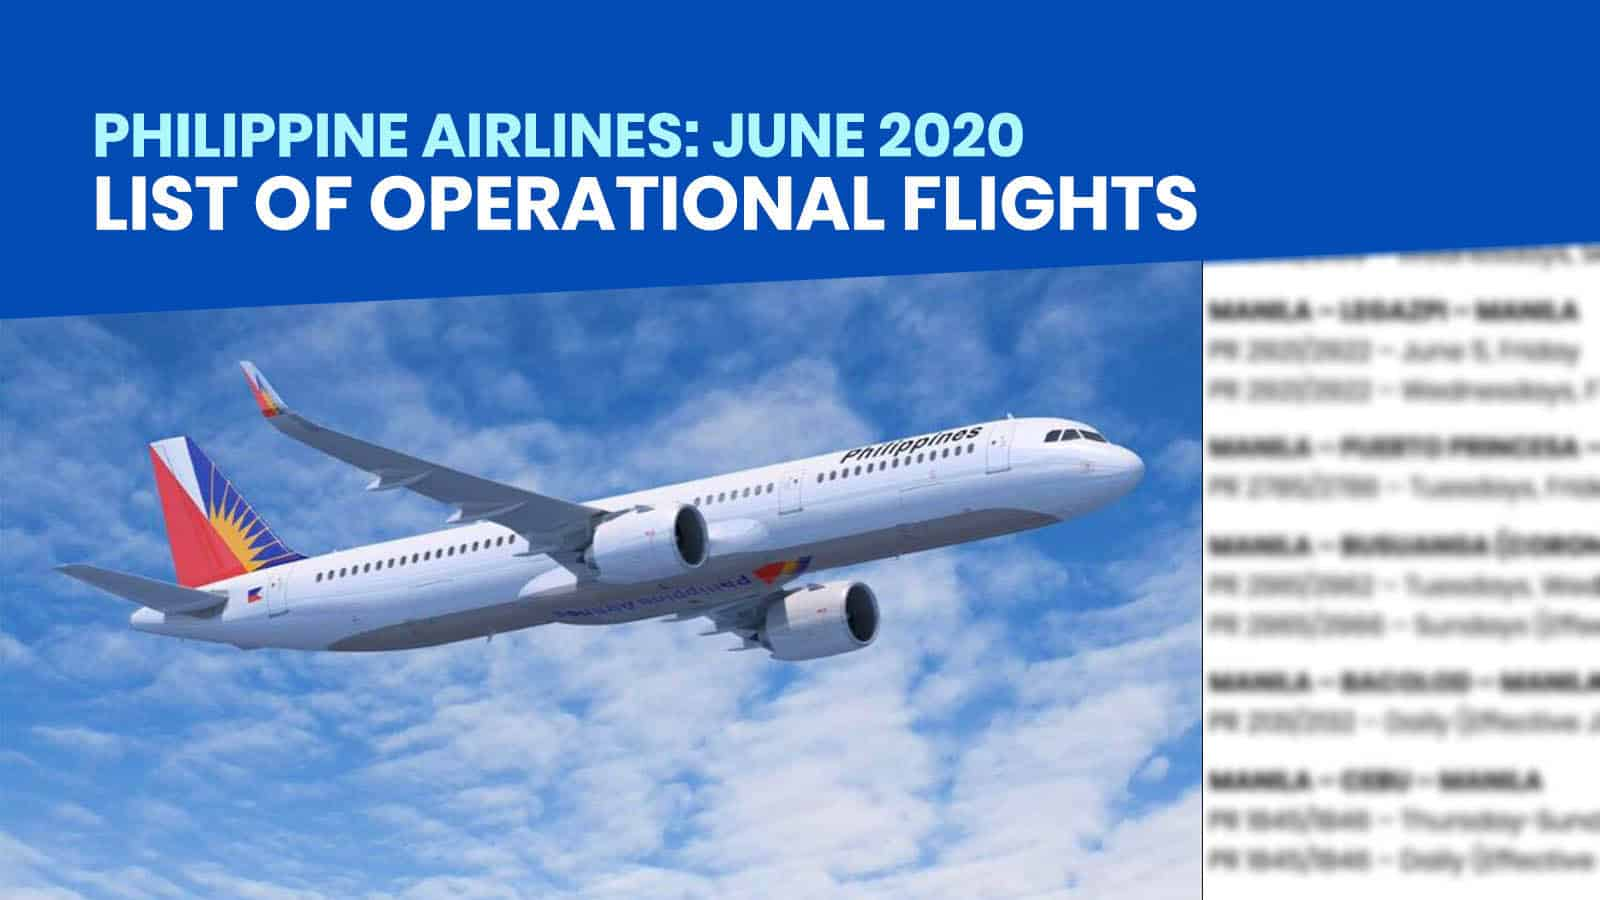 PHILIPPINE AIRLINES: List of Operational Flights for June 2020